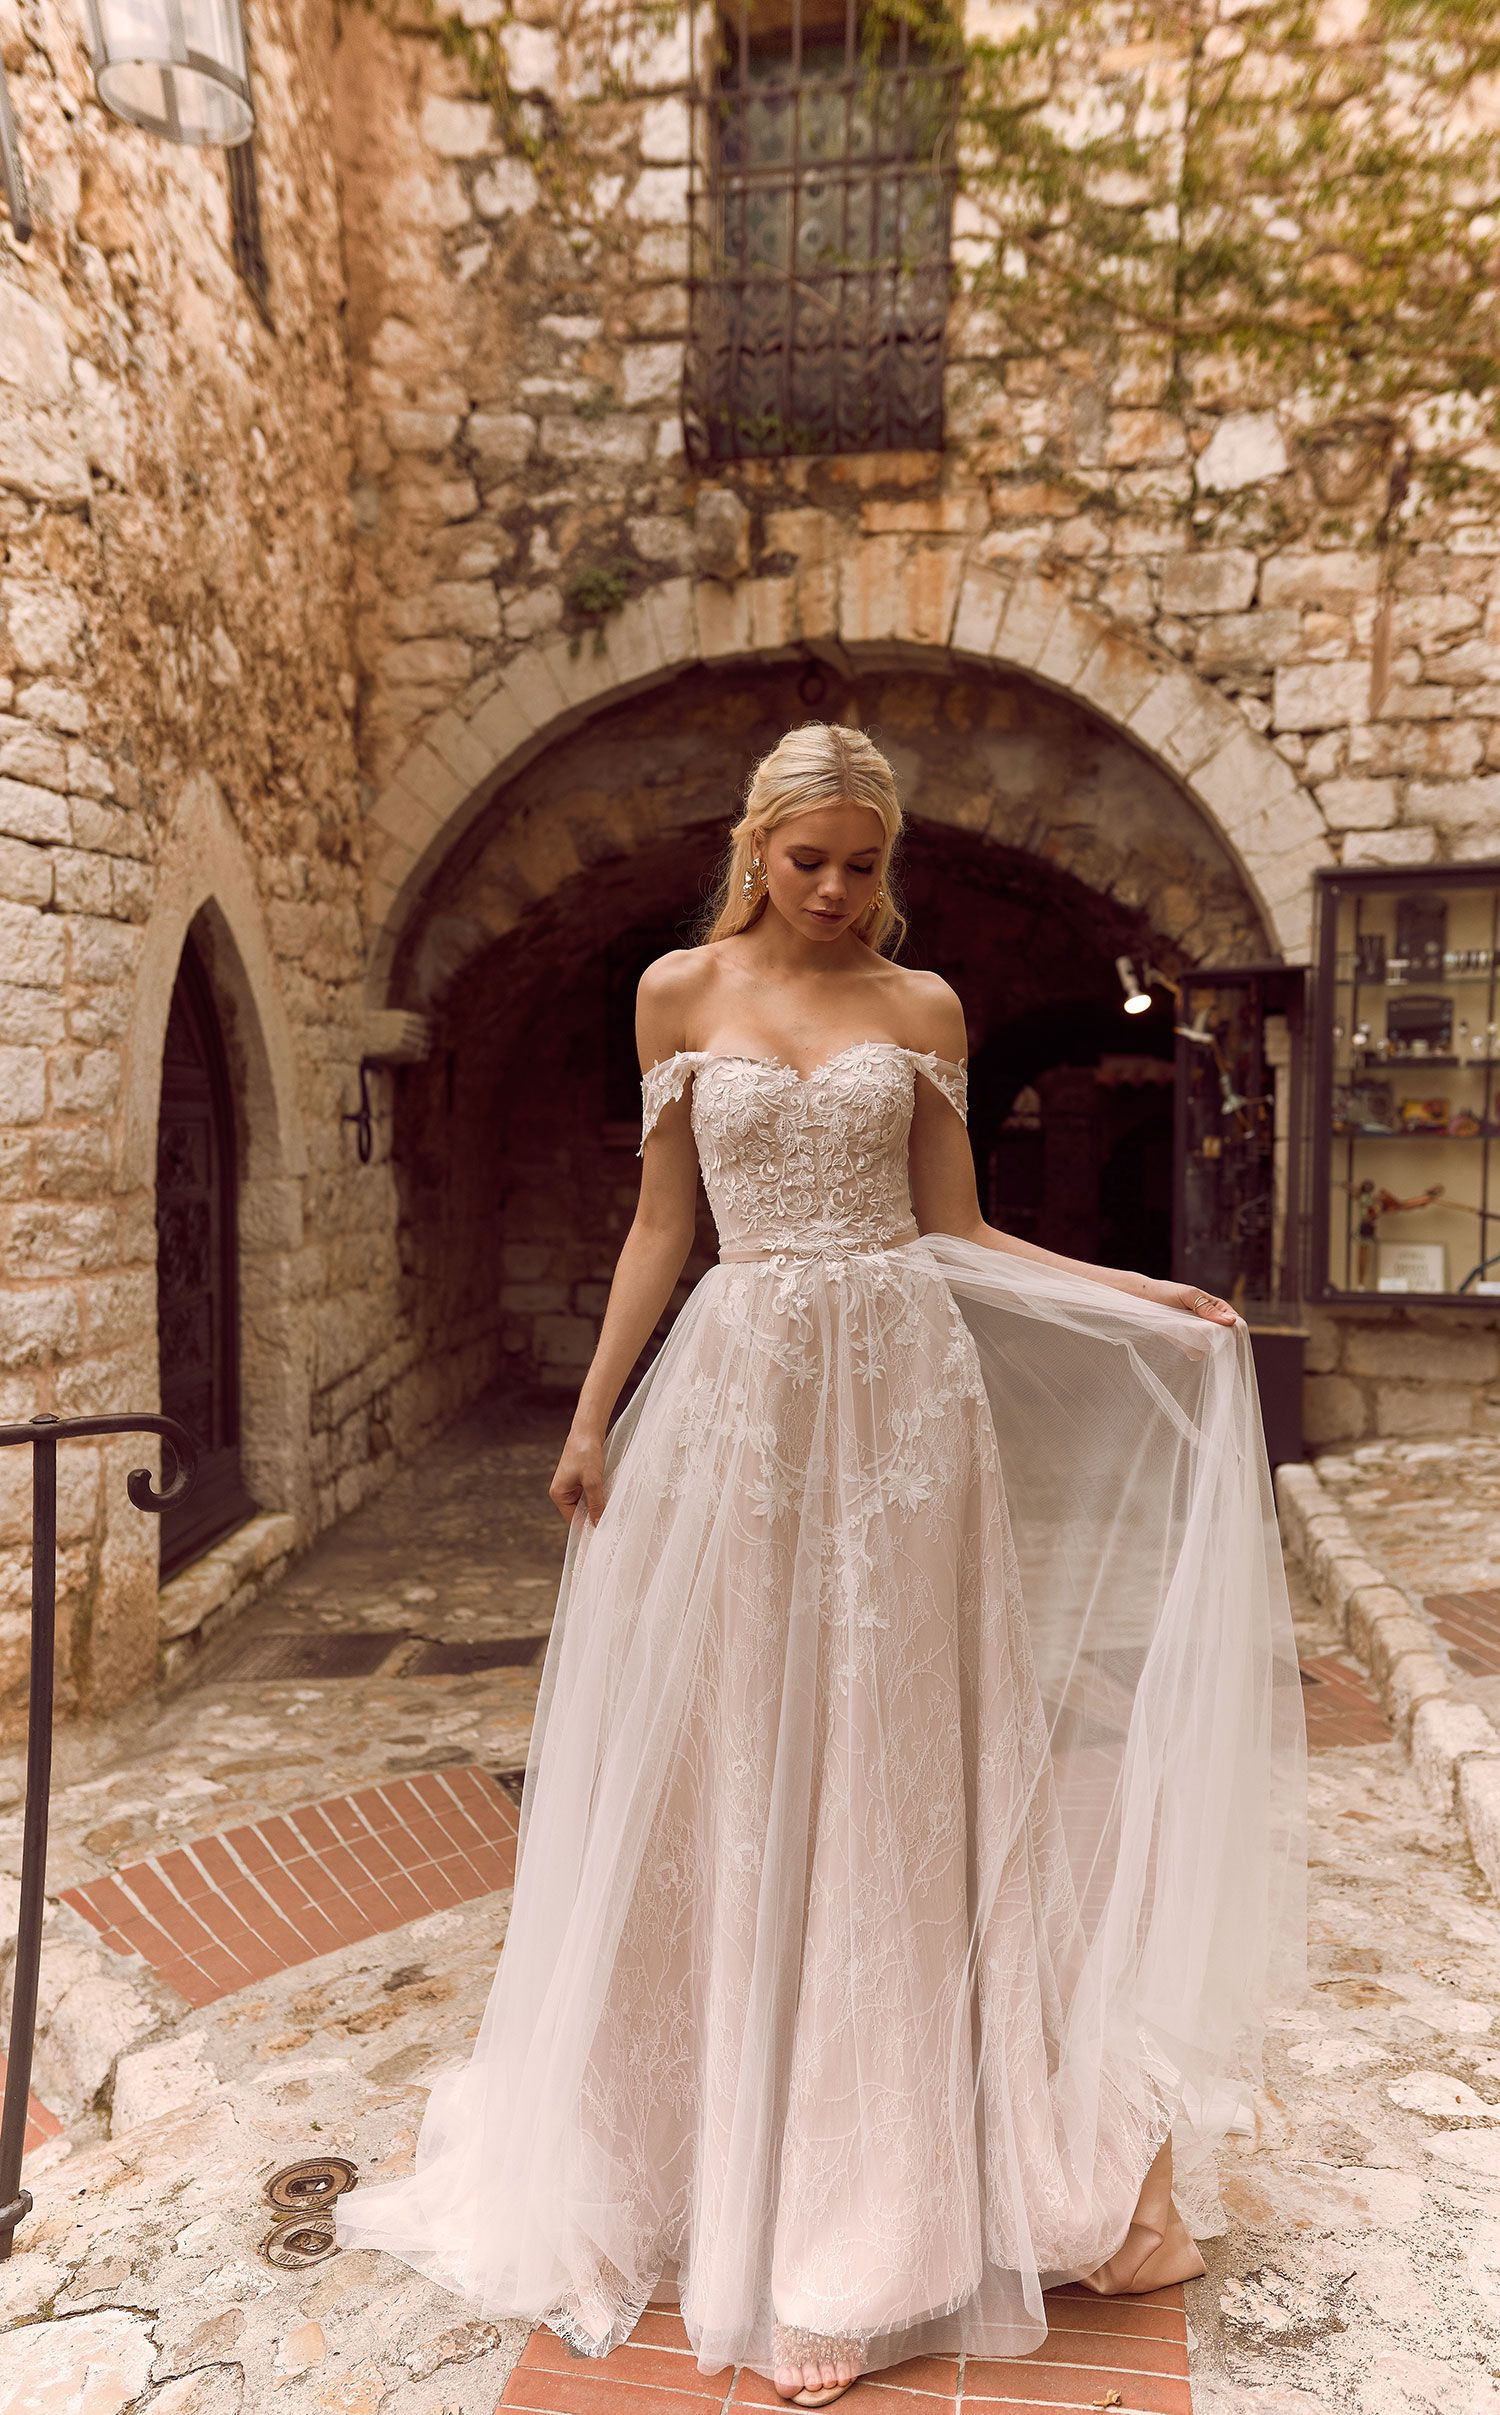 The soft romance H A R M O N Y gown by Madi Lane Bridal | style number: ML8419 #weddingdress